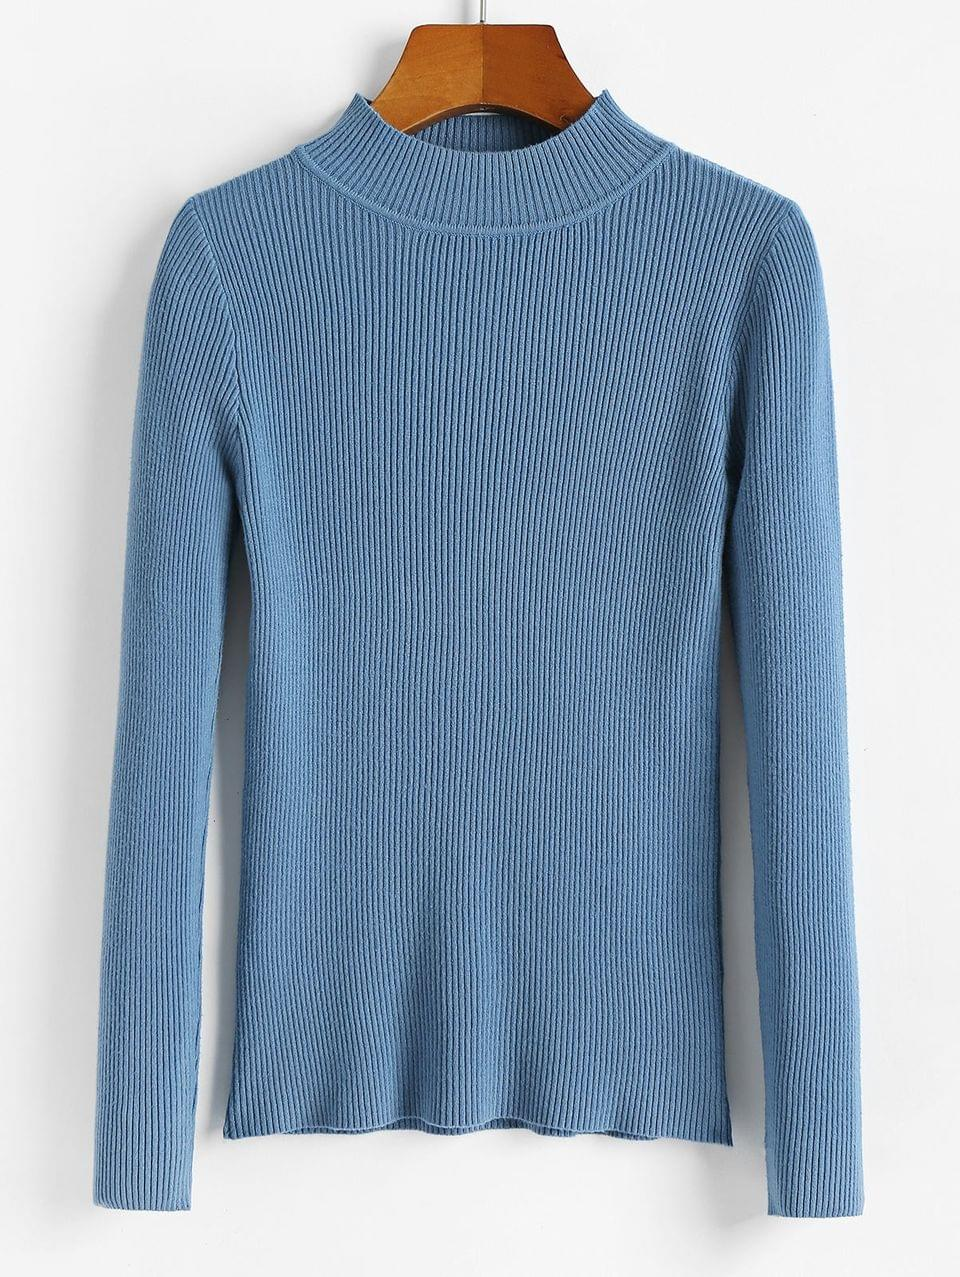 Women's Ribbed Mock Neck Slim Knitted Sweater - Blue Ivy